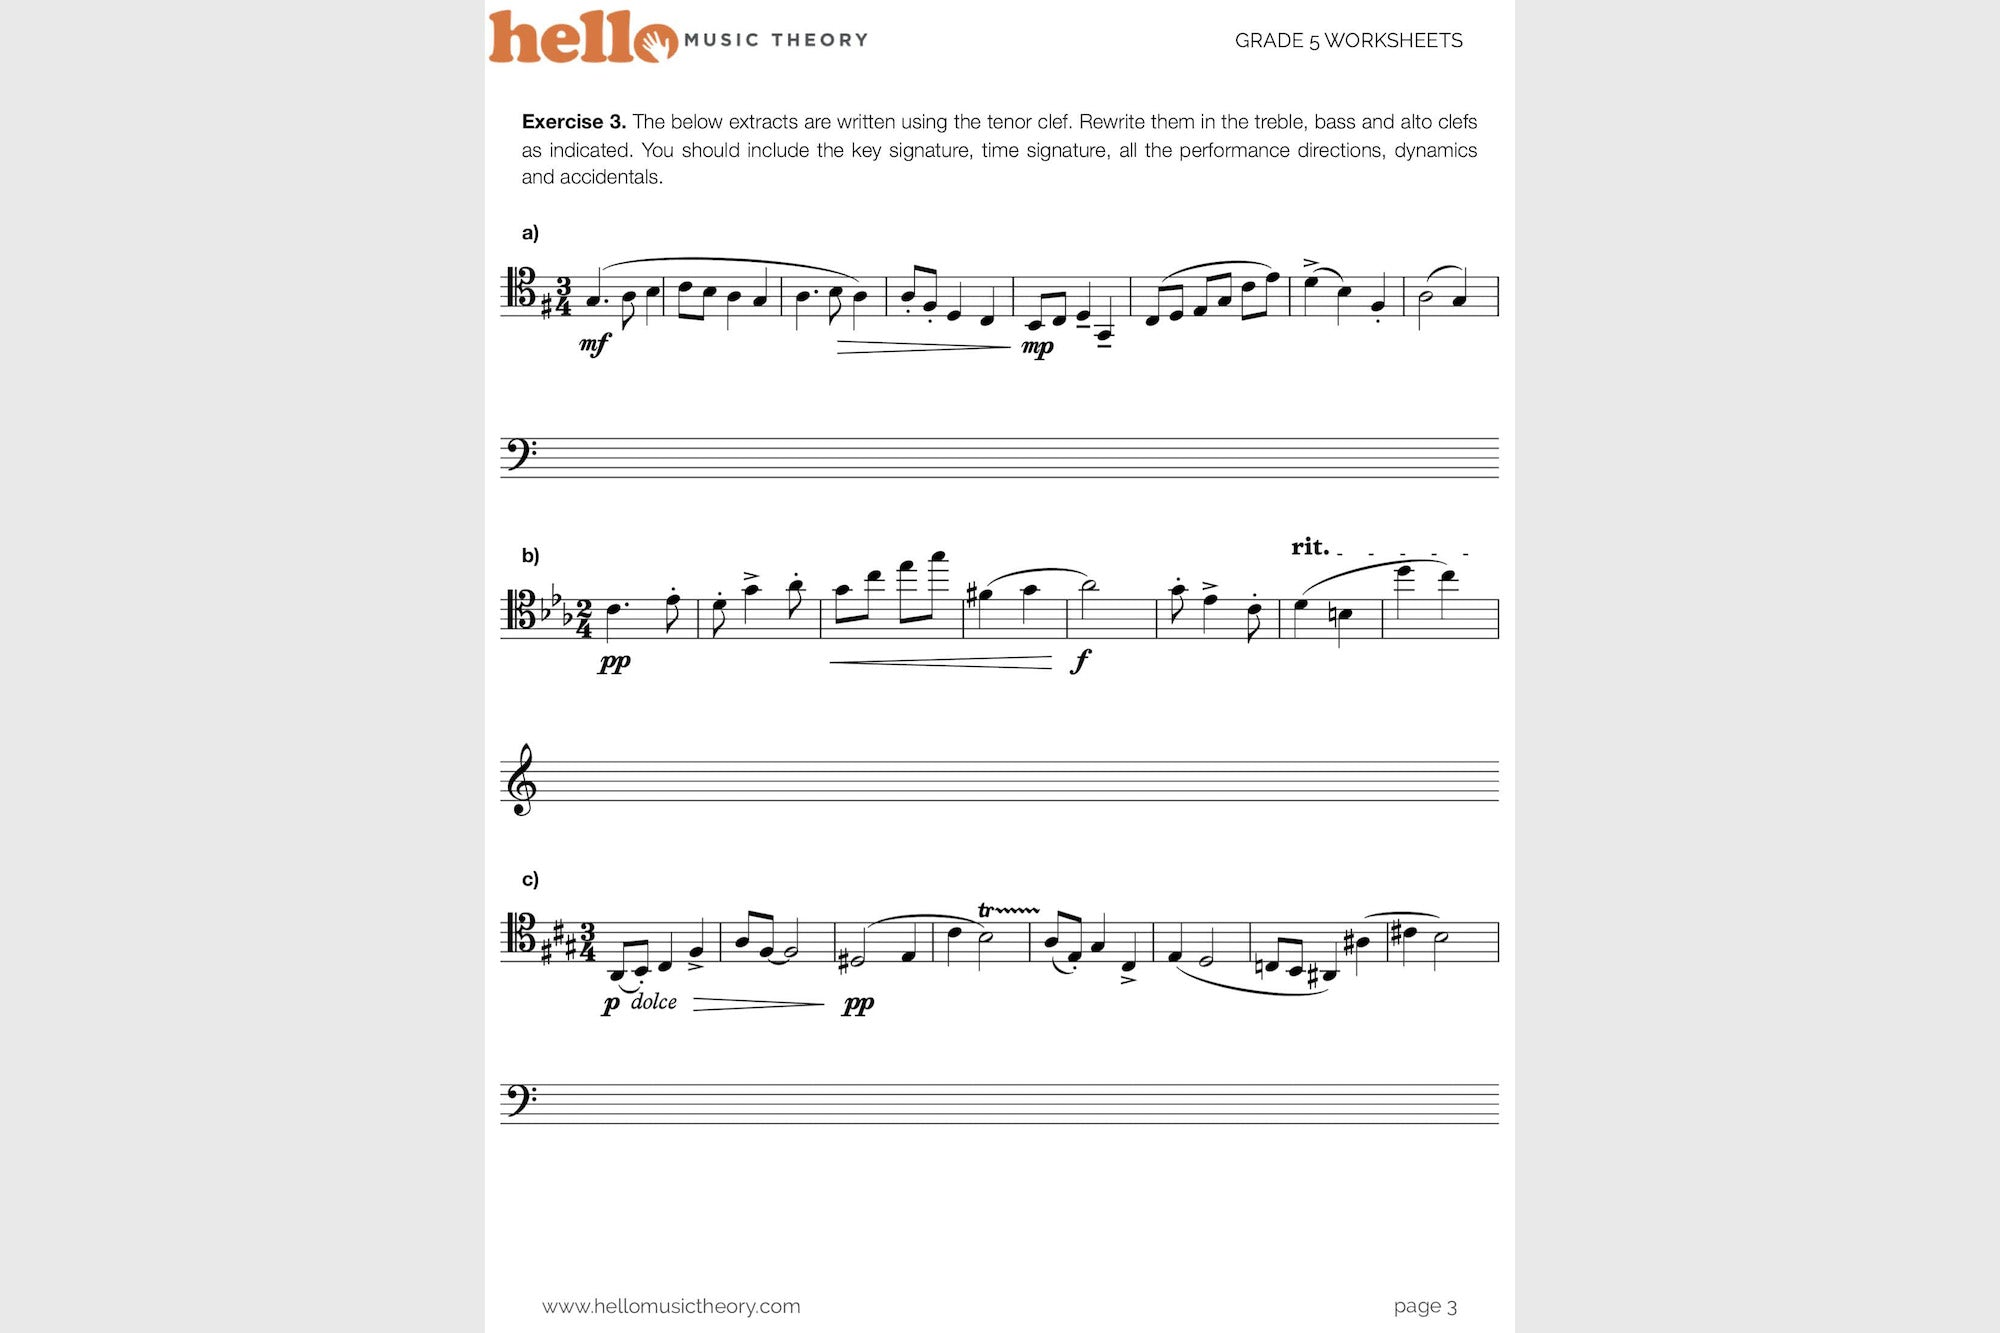 Grade 5 Music Theory Worksheets Hello Music Theory